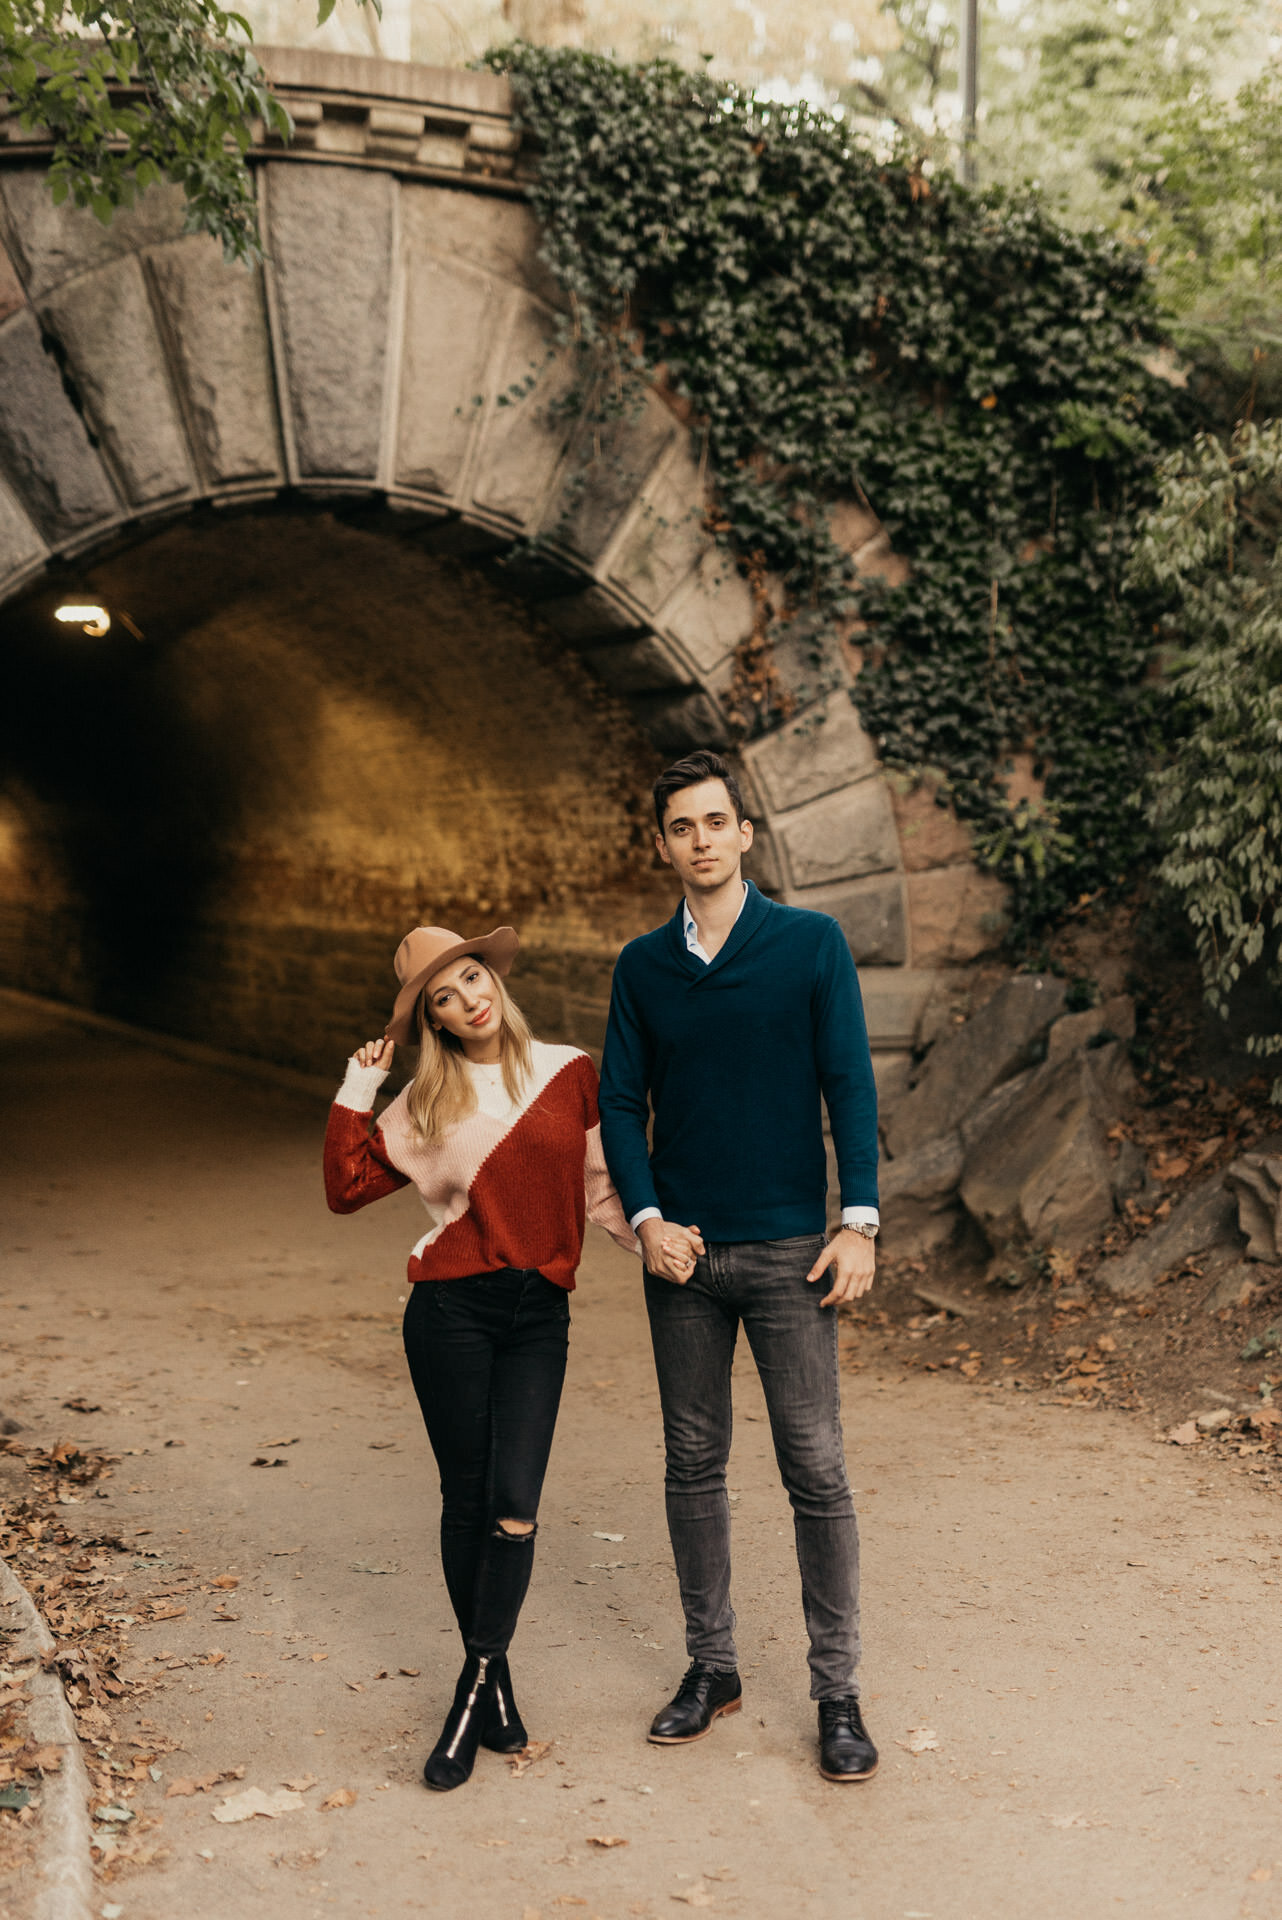 fall-october-new-york-central-park-couples-engagement-session-photographer